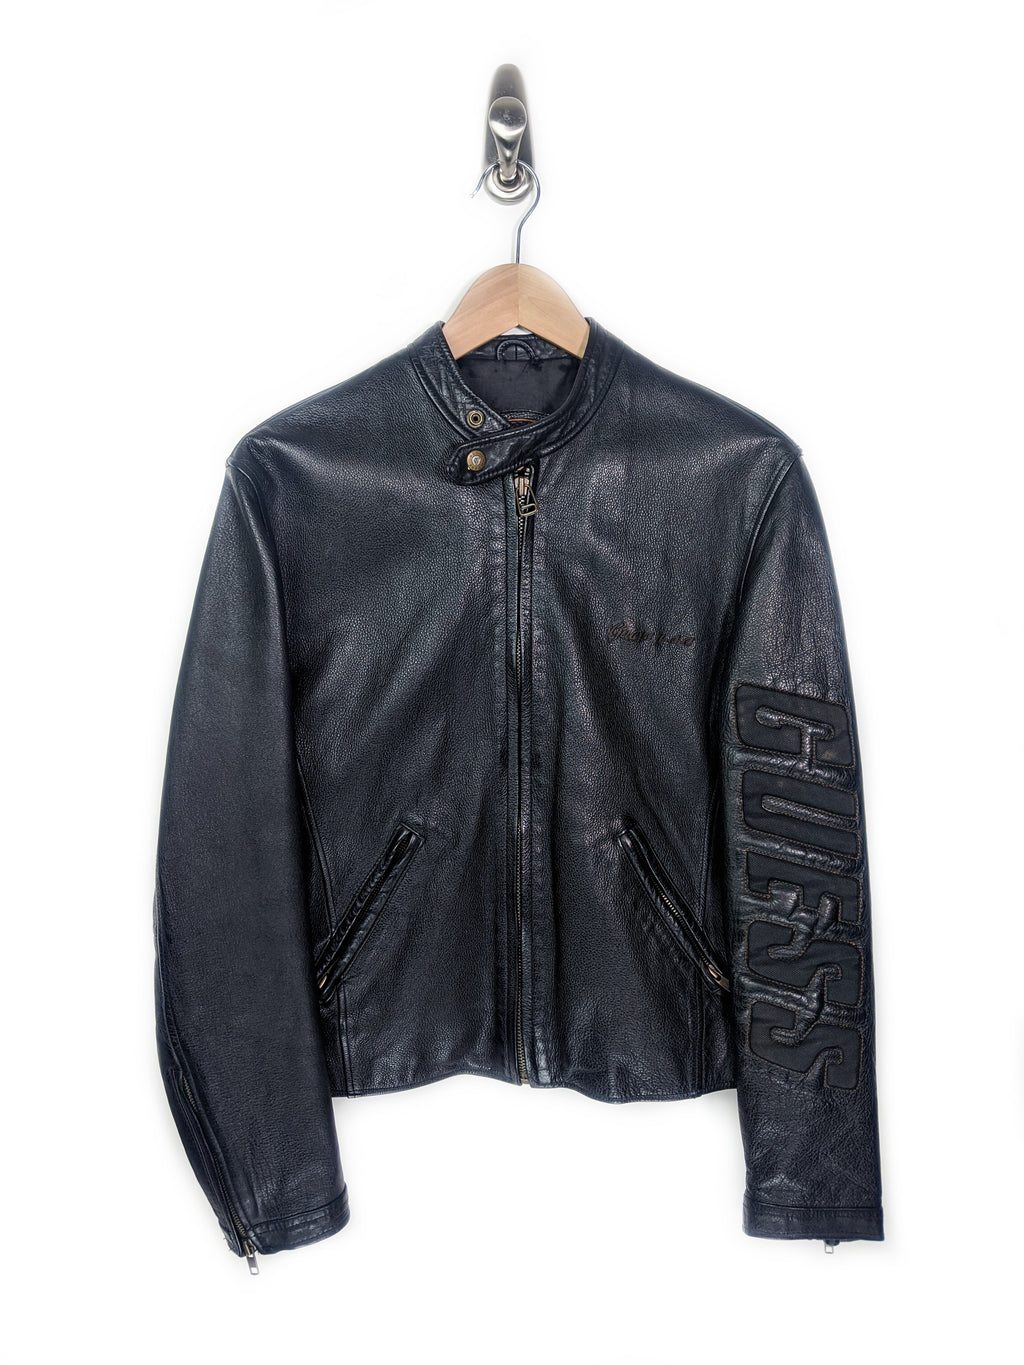 Guess Leather Motorcycle Jacket (S)